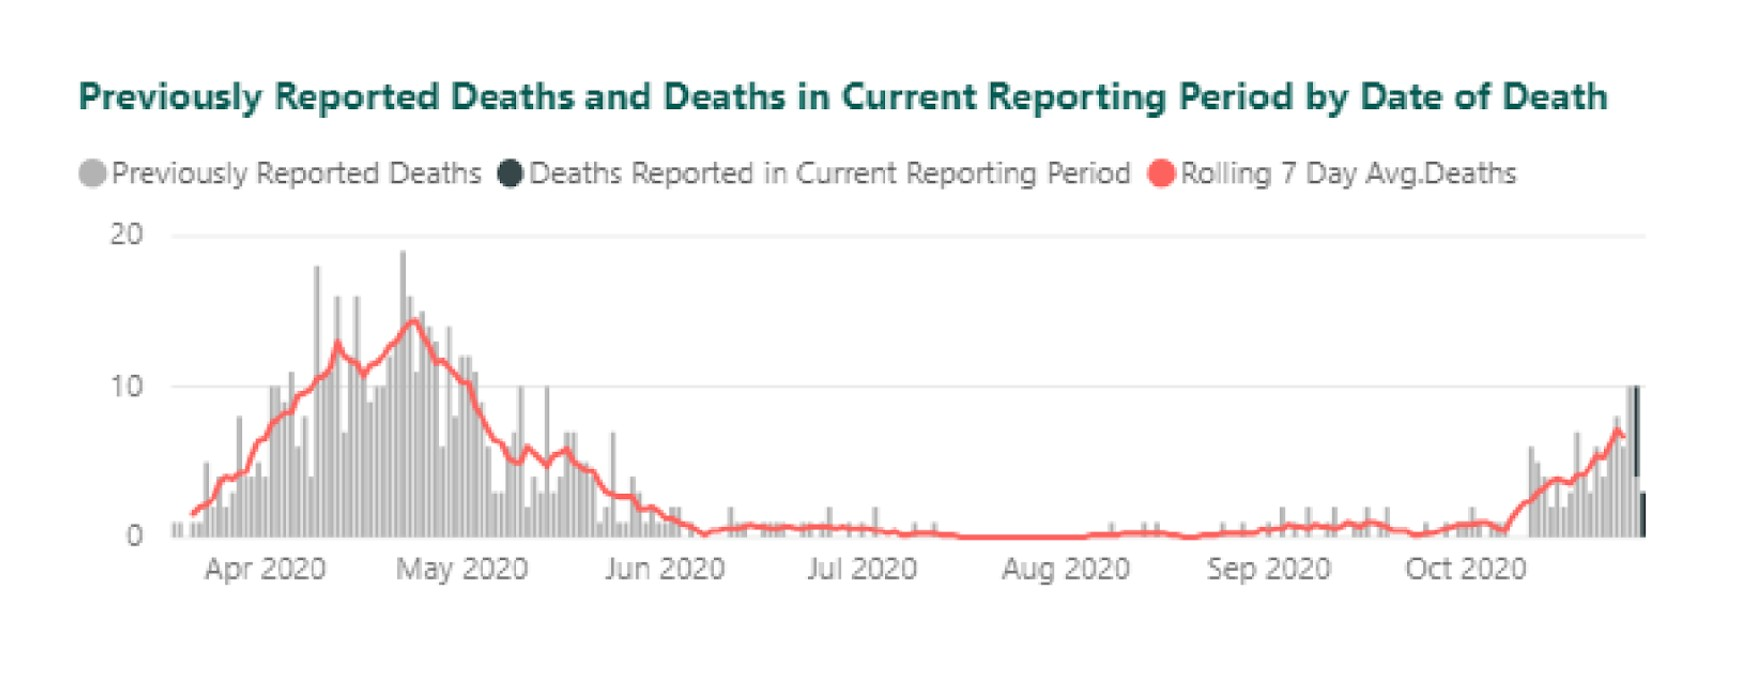 Previously Reported Deaths and Deaths in Current Reporting Period by Date of Death